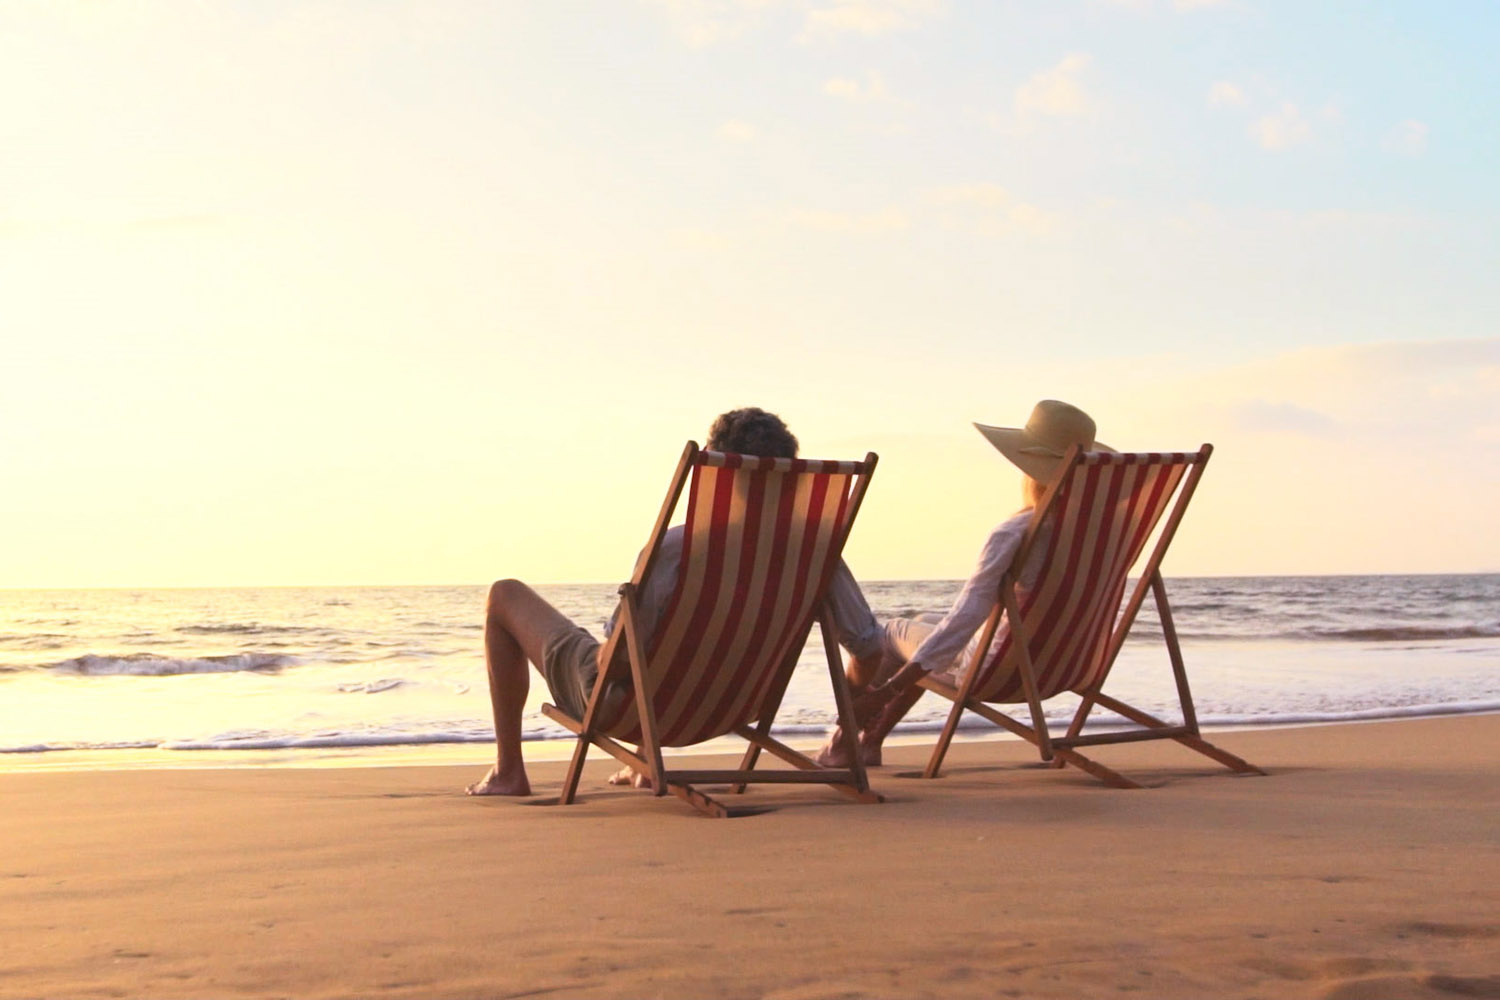 If you are going to retire in Canada and you have a Defined Benefit Pension in the UK, life might be better if you transfer the funds to Canada.